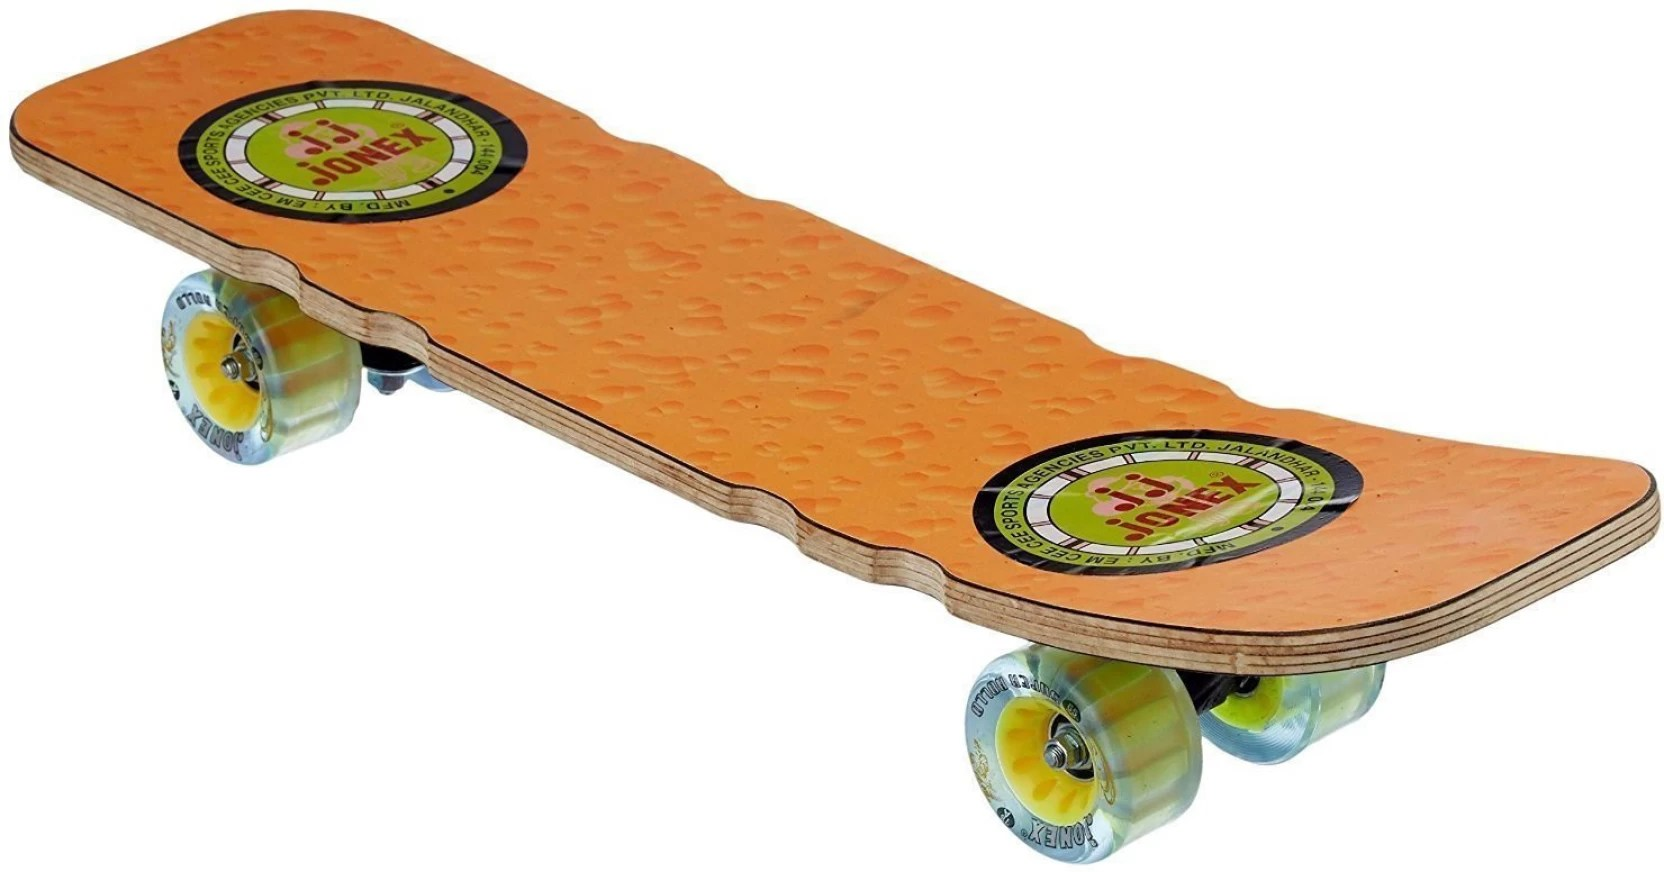 Rollo 24 Jonex Super Rollo 24 Inch X 6 Inch Skateboard